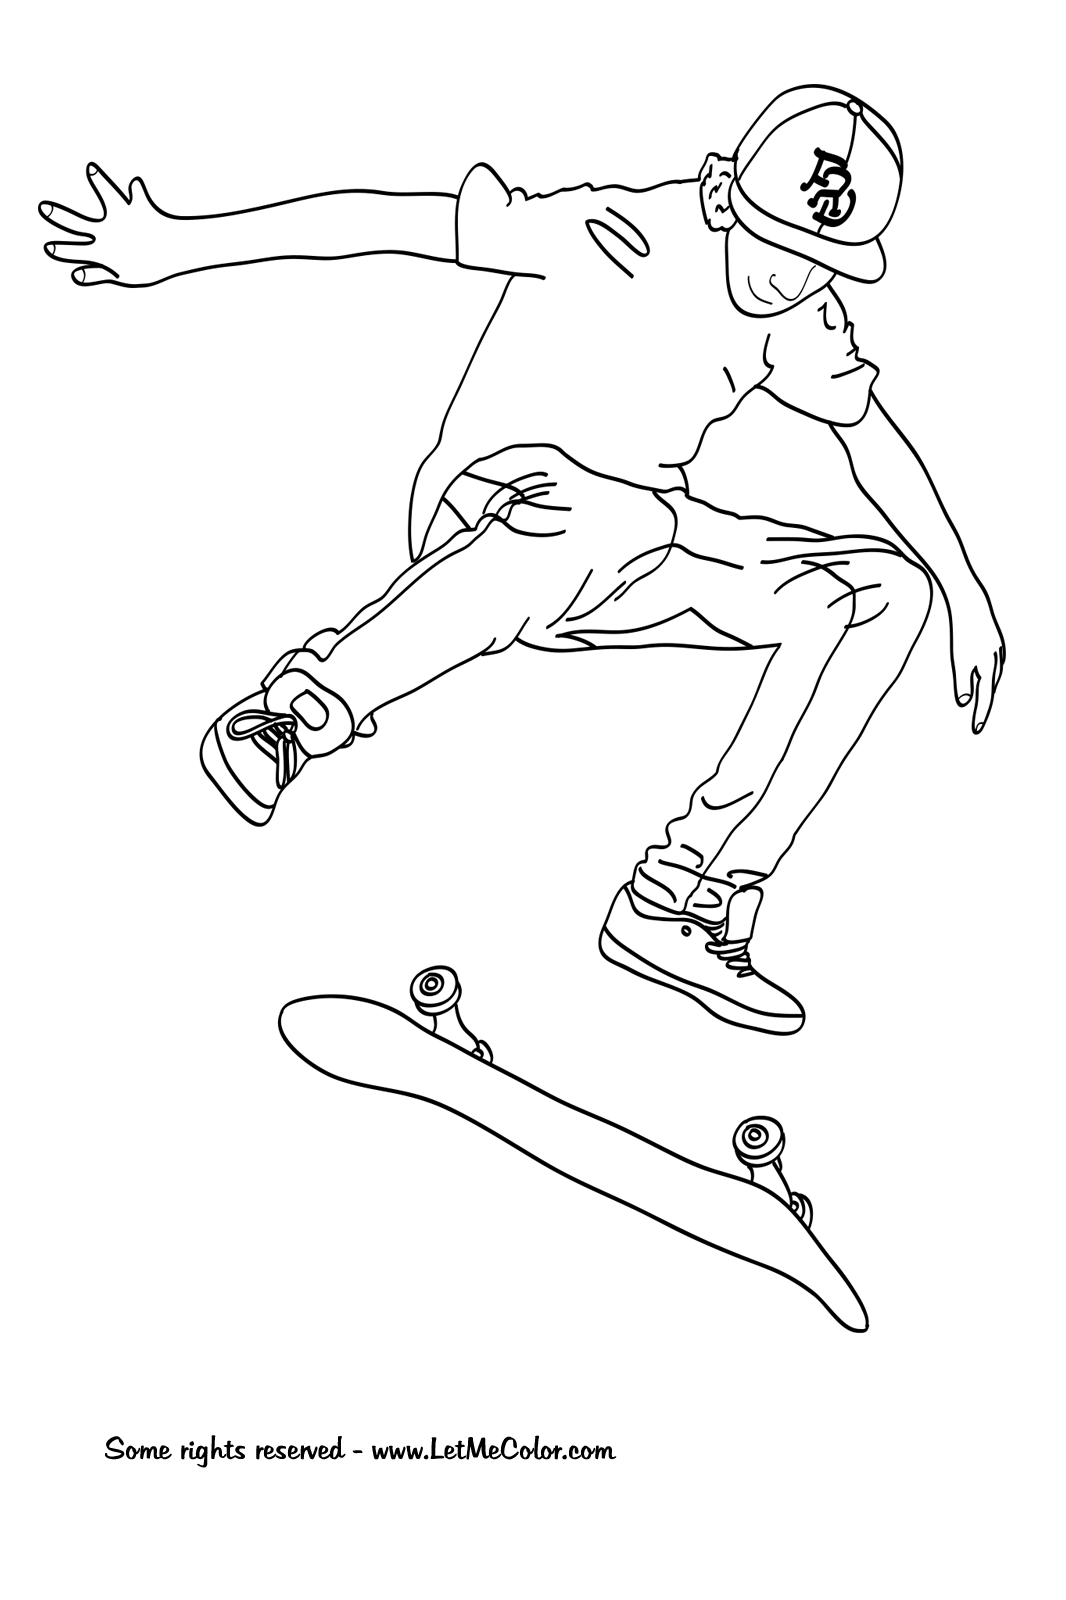 skateboard pictures to color balancing on skateboard coloring page free printable to skateboard color pictures